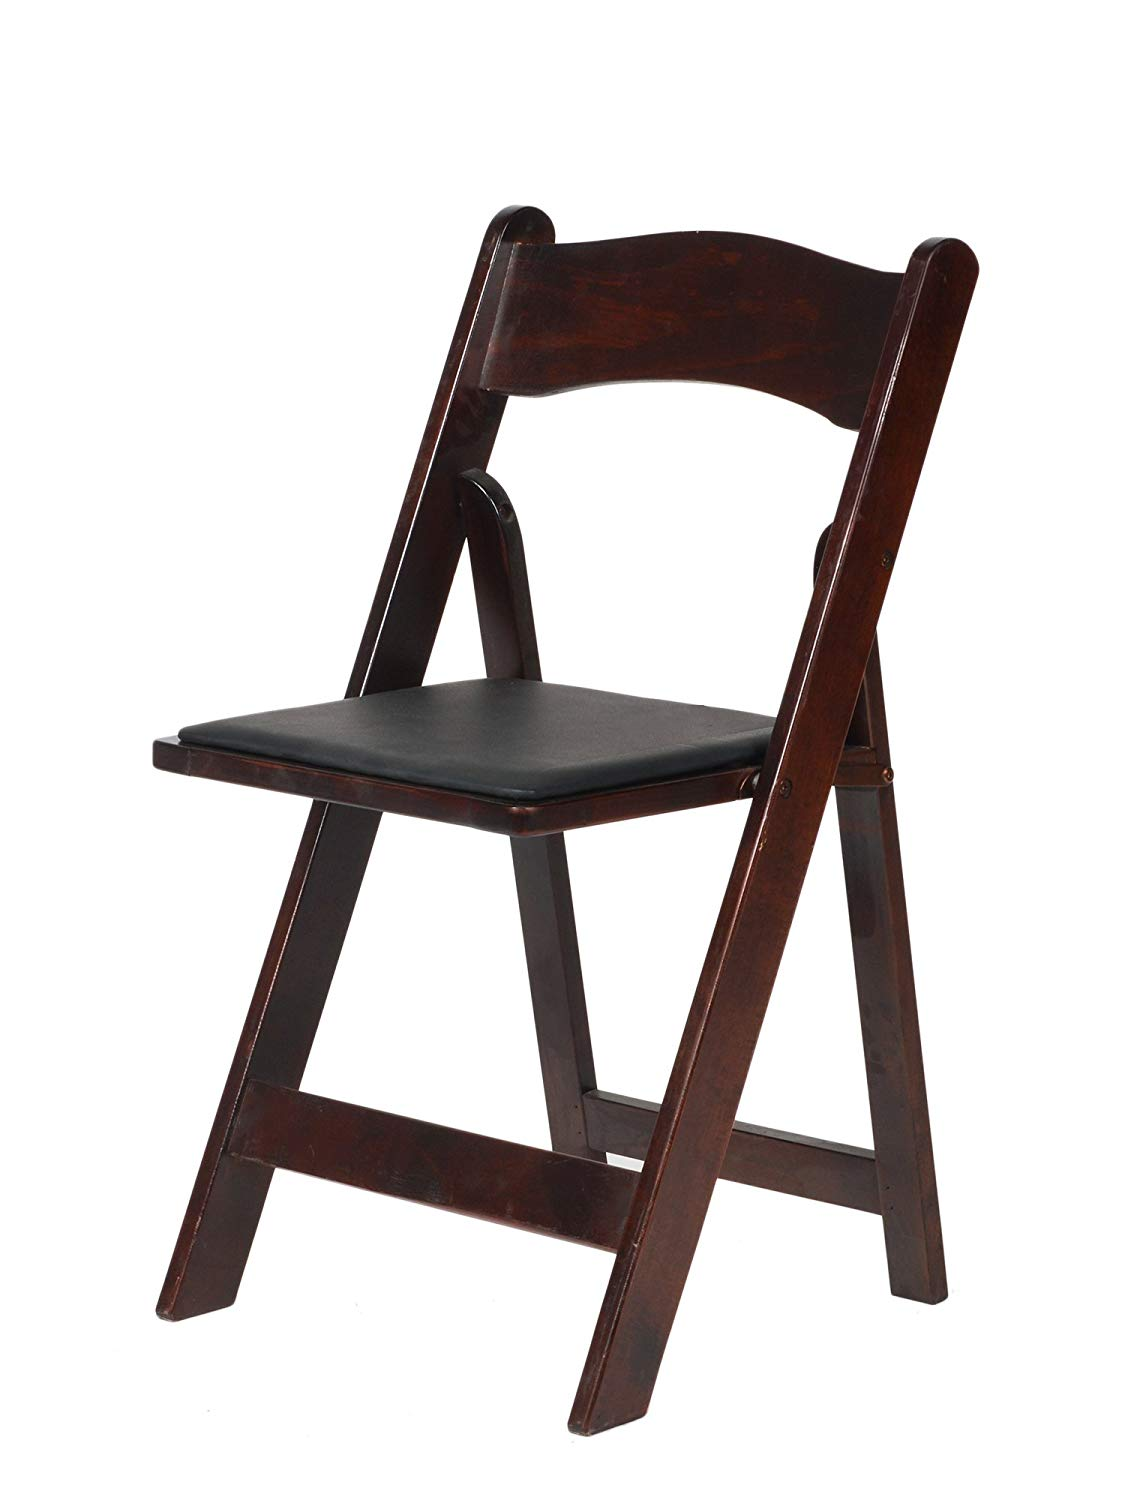 "CSP Events A-101-RM Wood Folding Chair, 30.5"" Height, 17.5"" Width, 17.5"" Length, Red Mahogany"